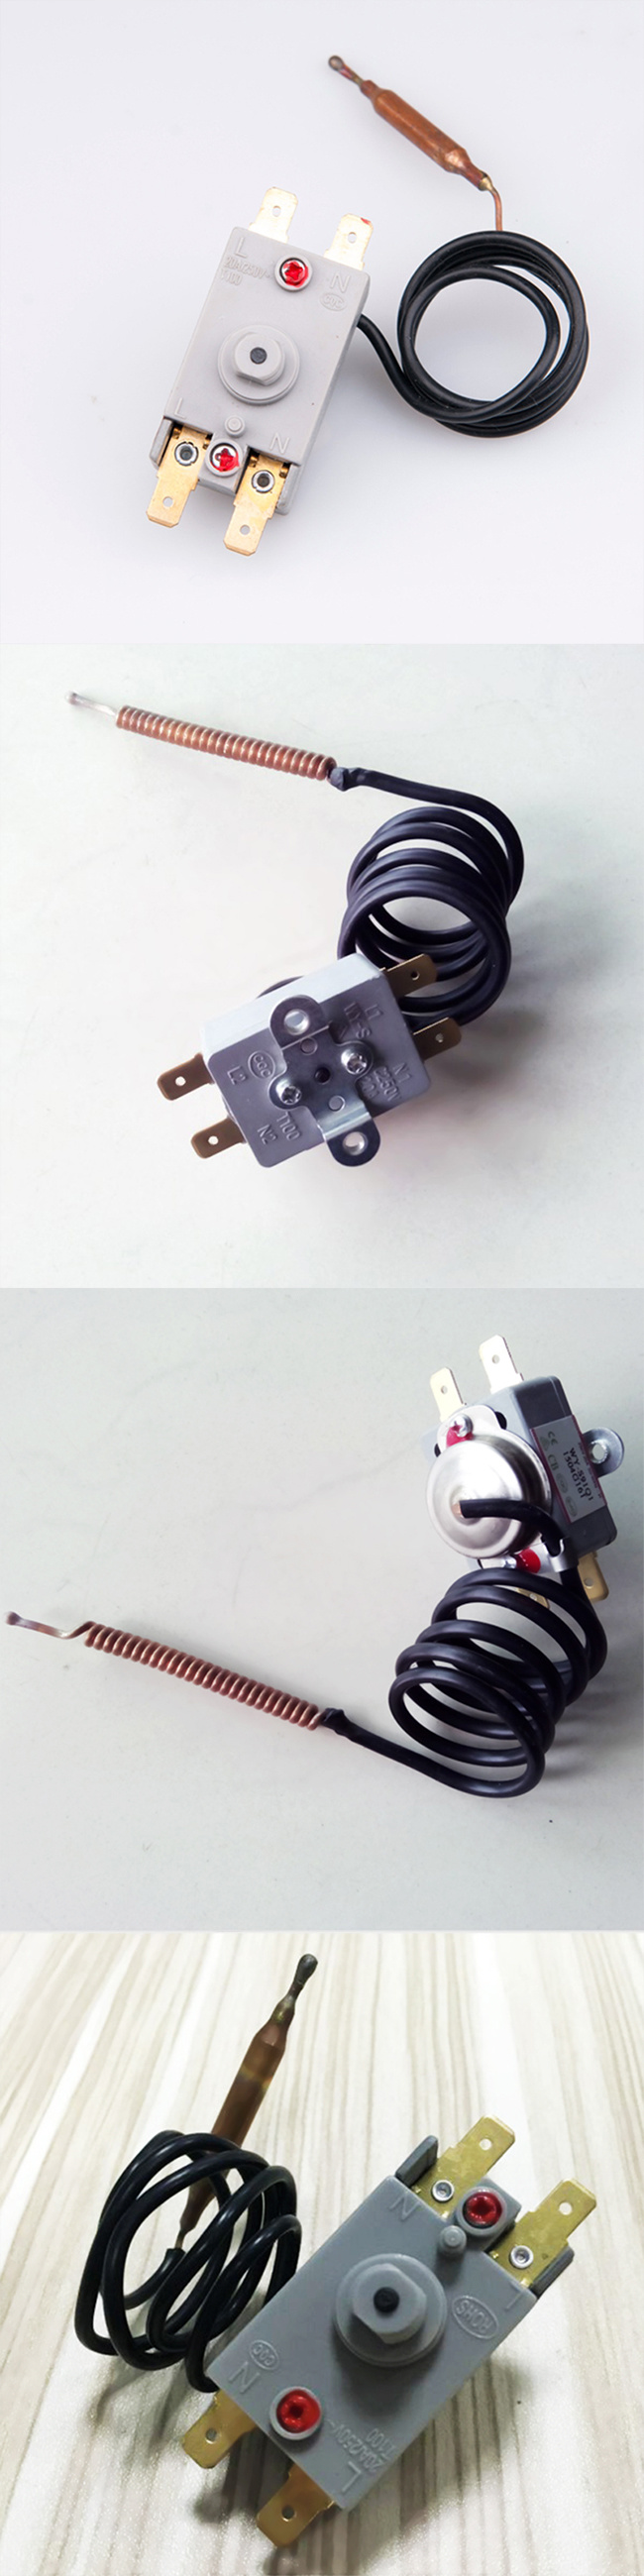 20a 250v High Quality Manual Reset Capillary Thermal Thermostat For Extension Cord Wiring Diagram Water Heater China Made In Chinacom